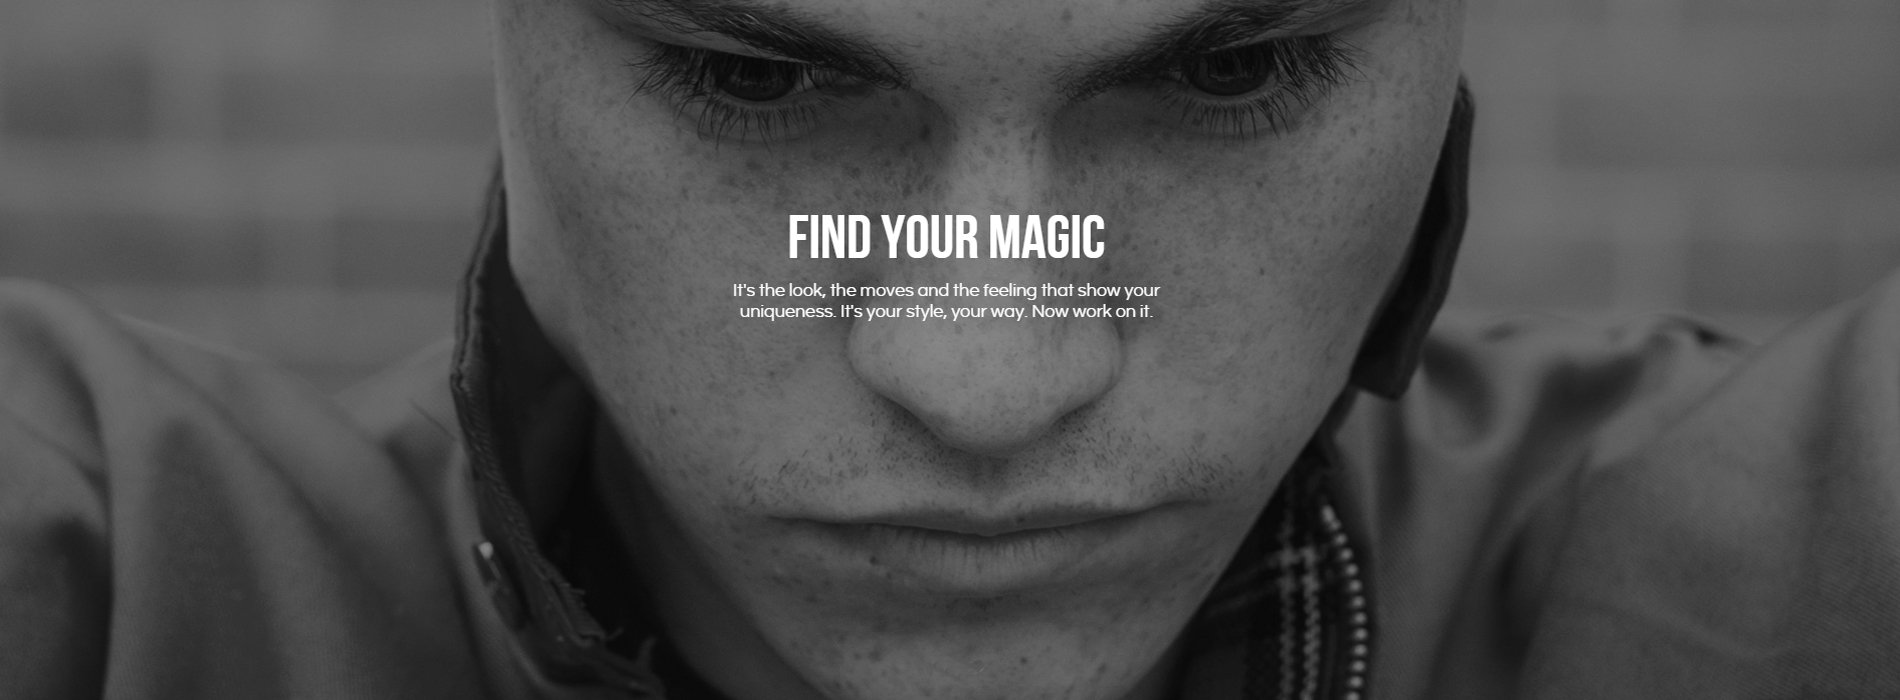 axe®find-your-magic